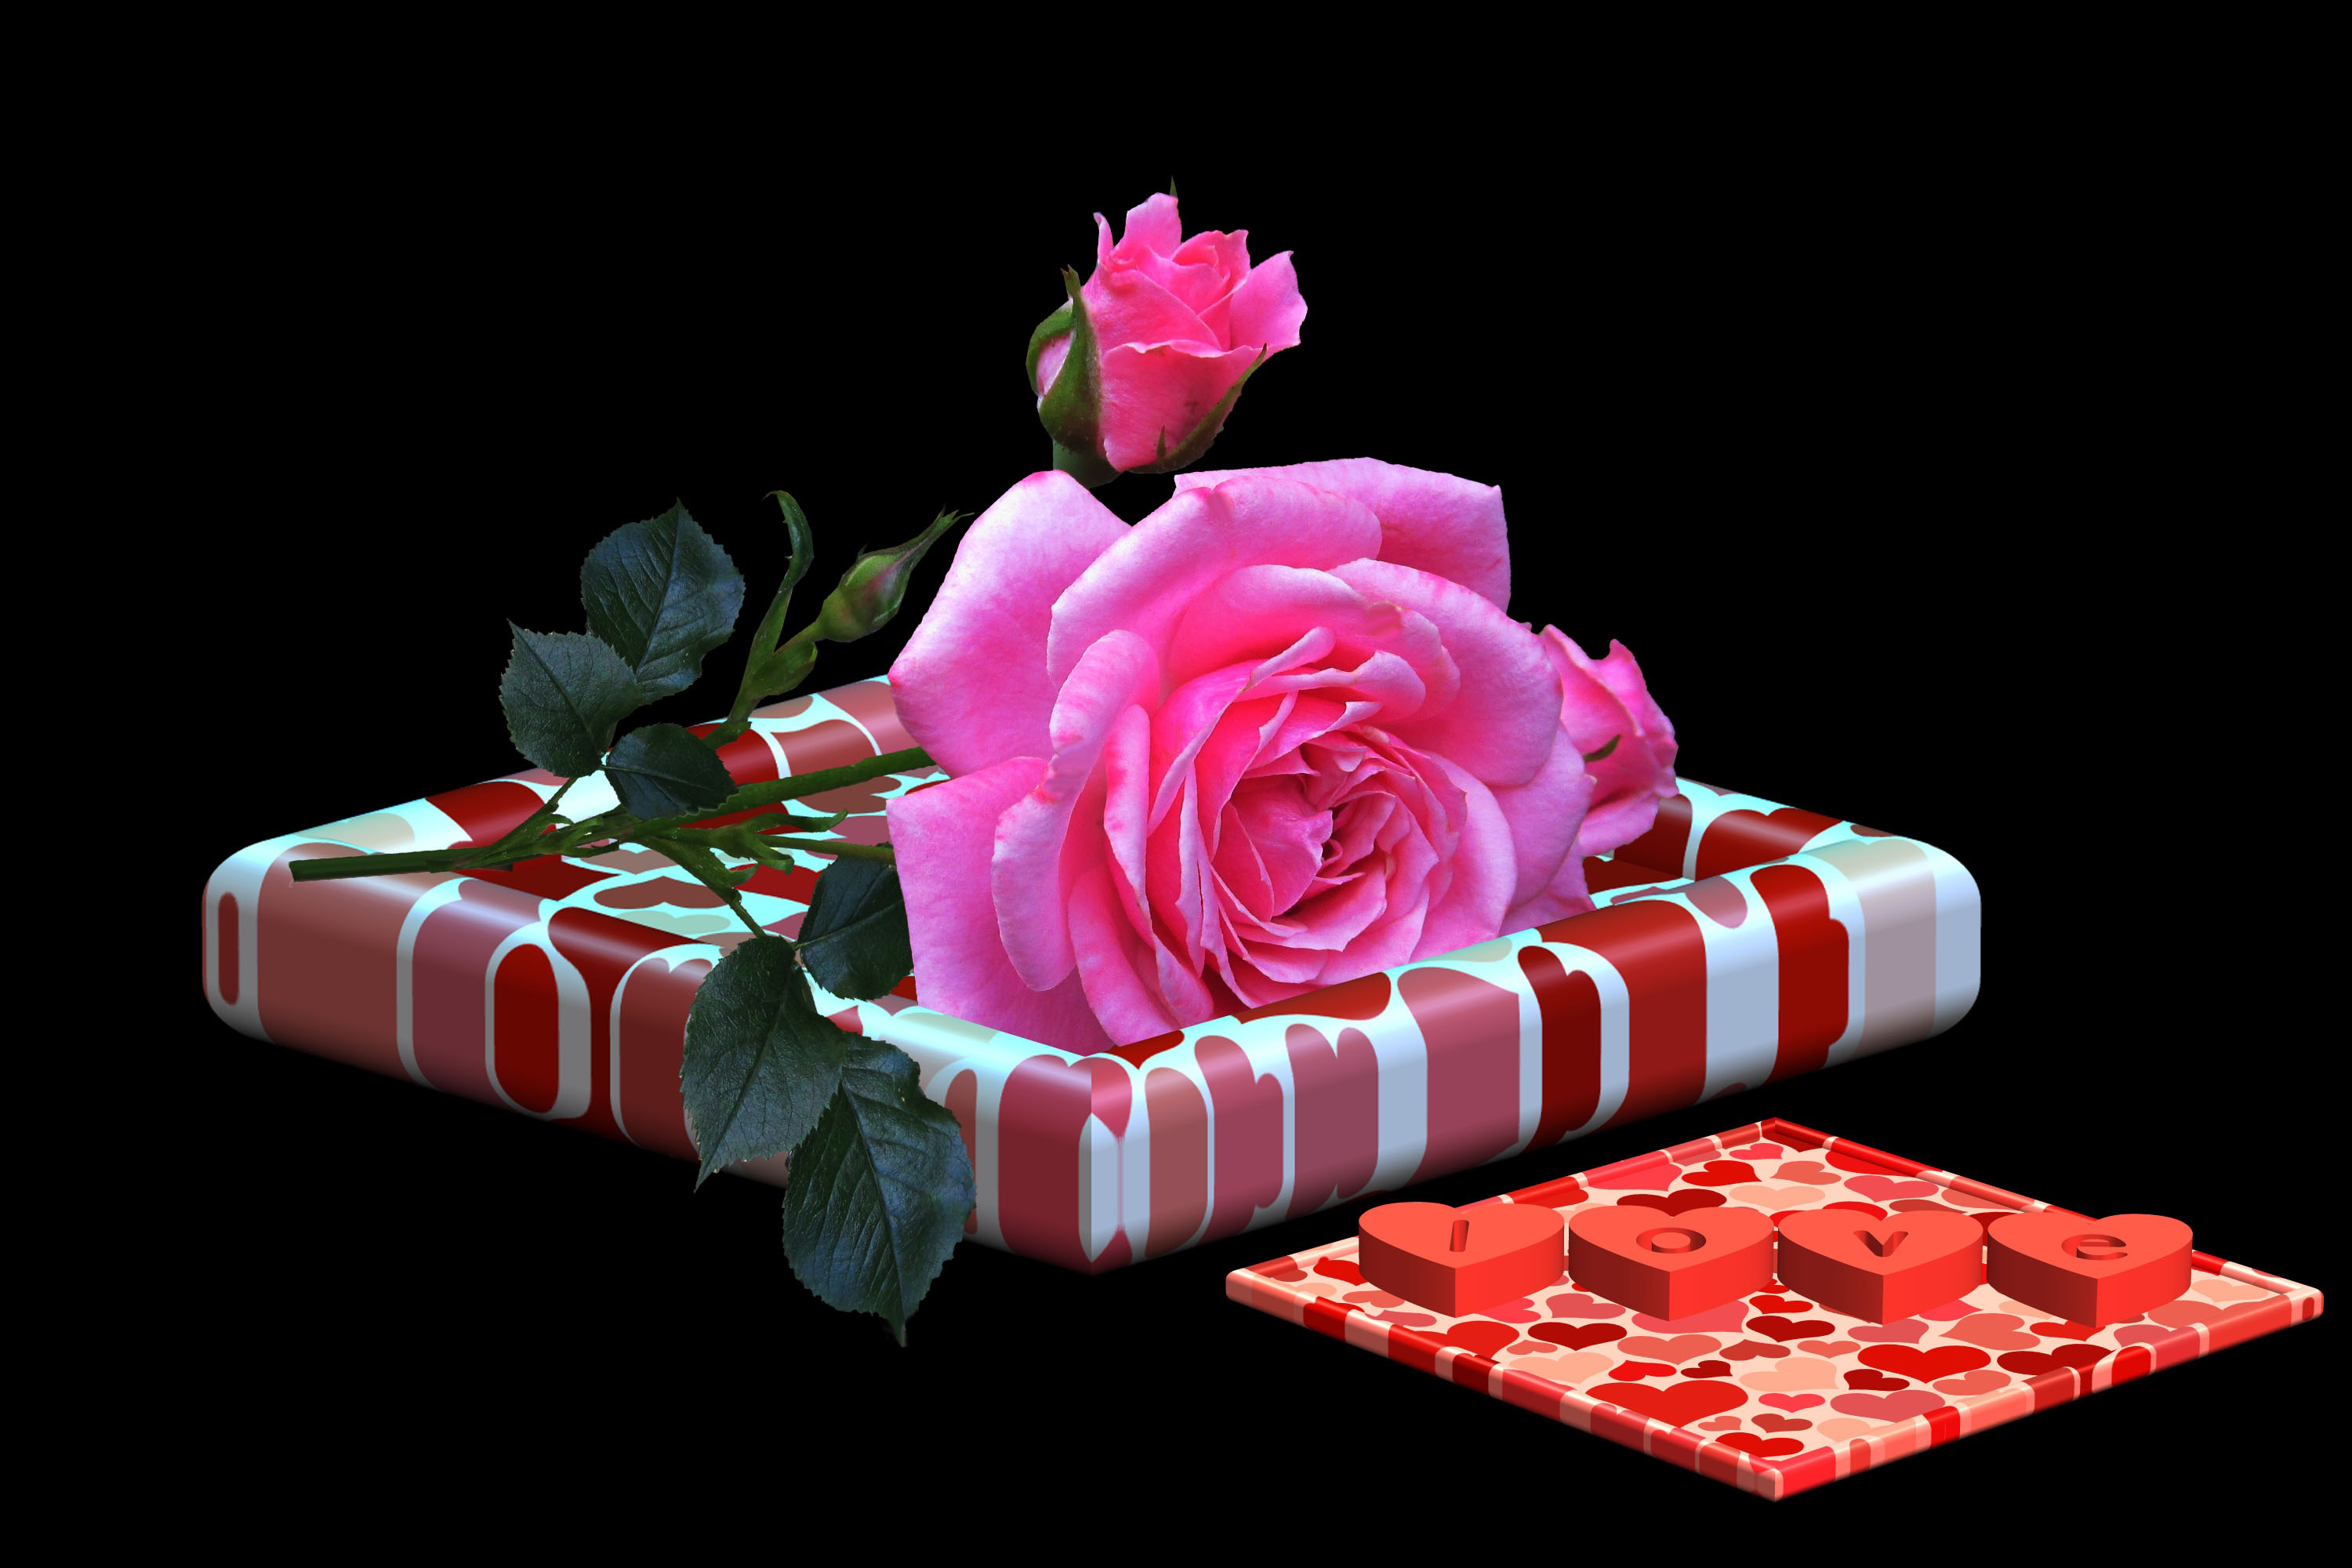 rose, flower, dedicated, wishes, decoration, emotion, gift, romantic,